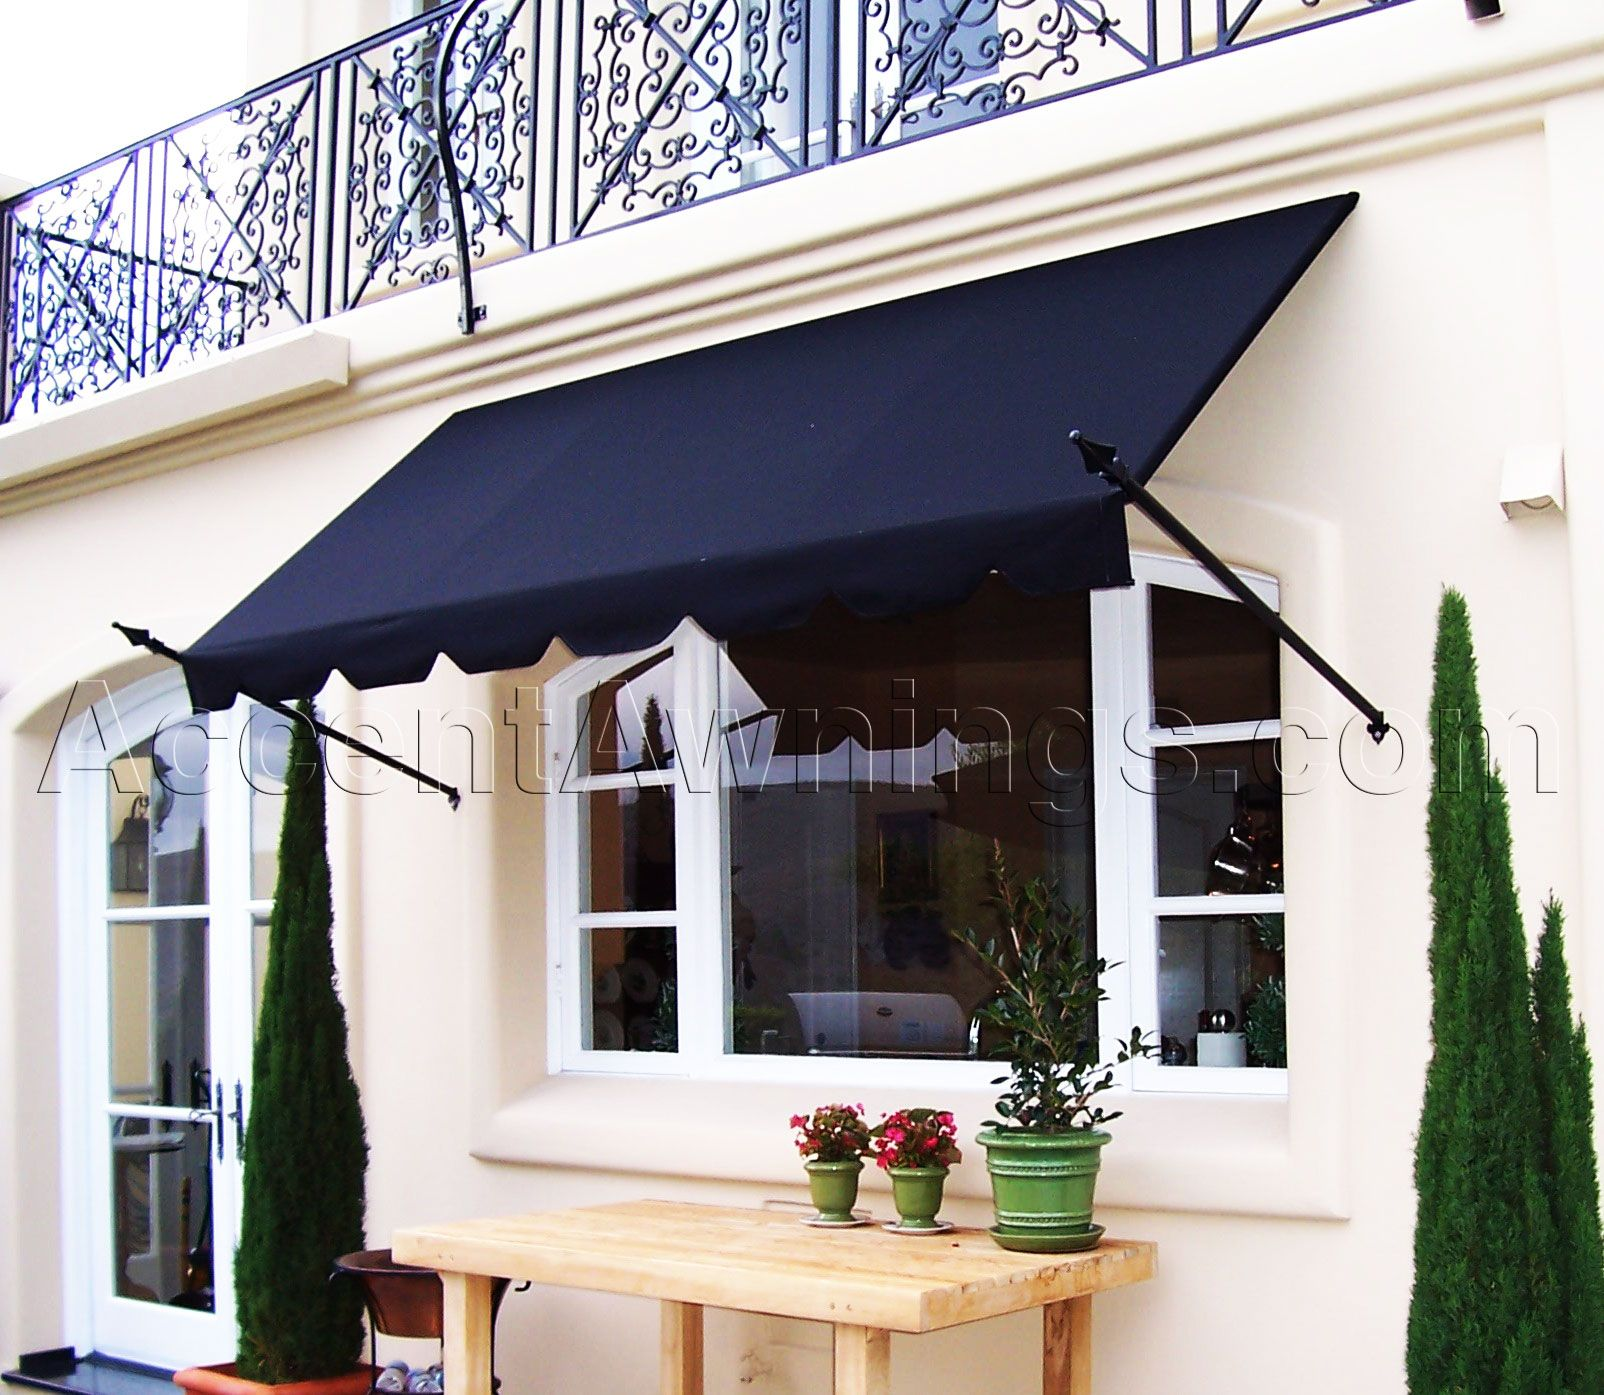 Window Canopy Pin By Eddy Harte On Awnings In 2019 Outdoor Awnings Fabric